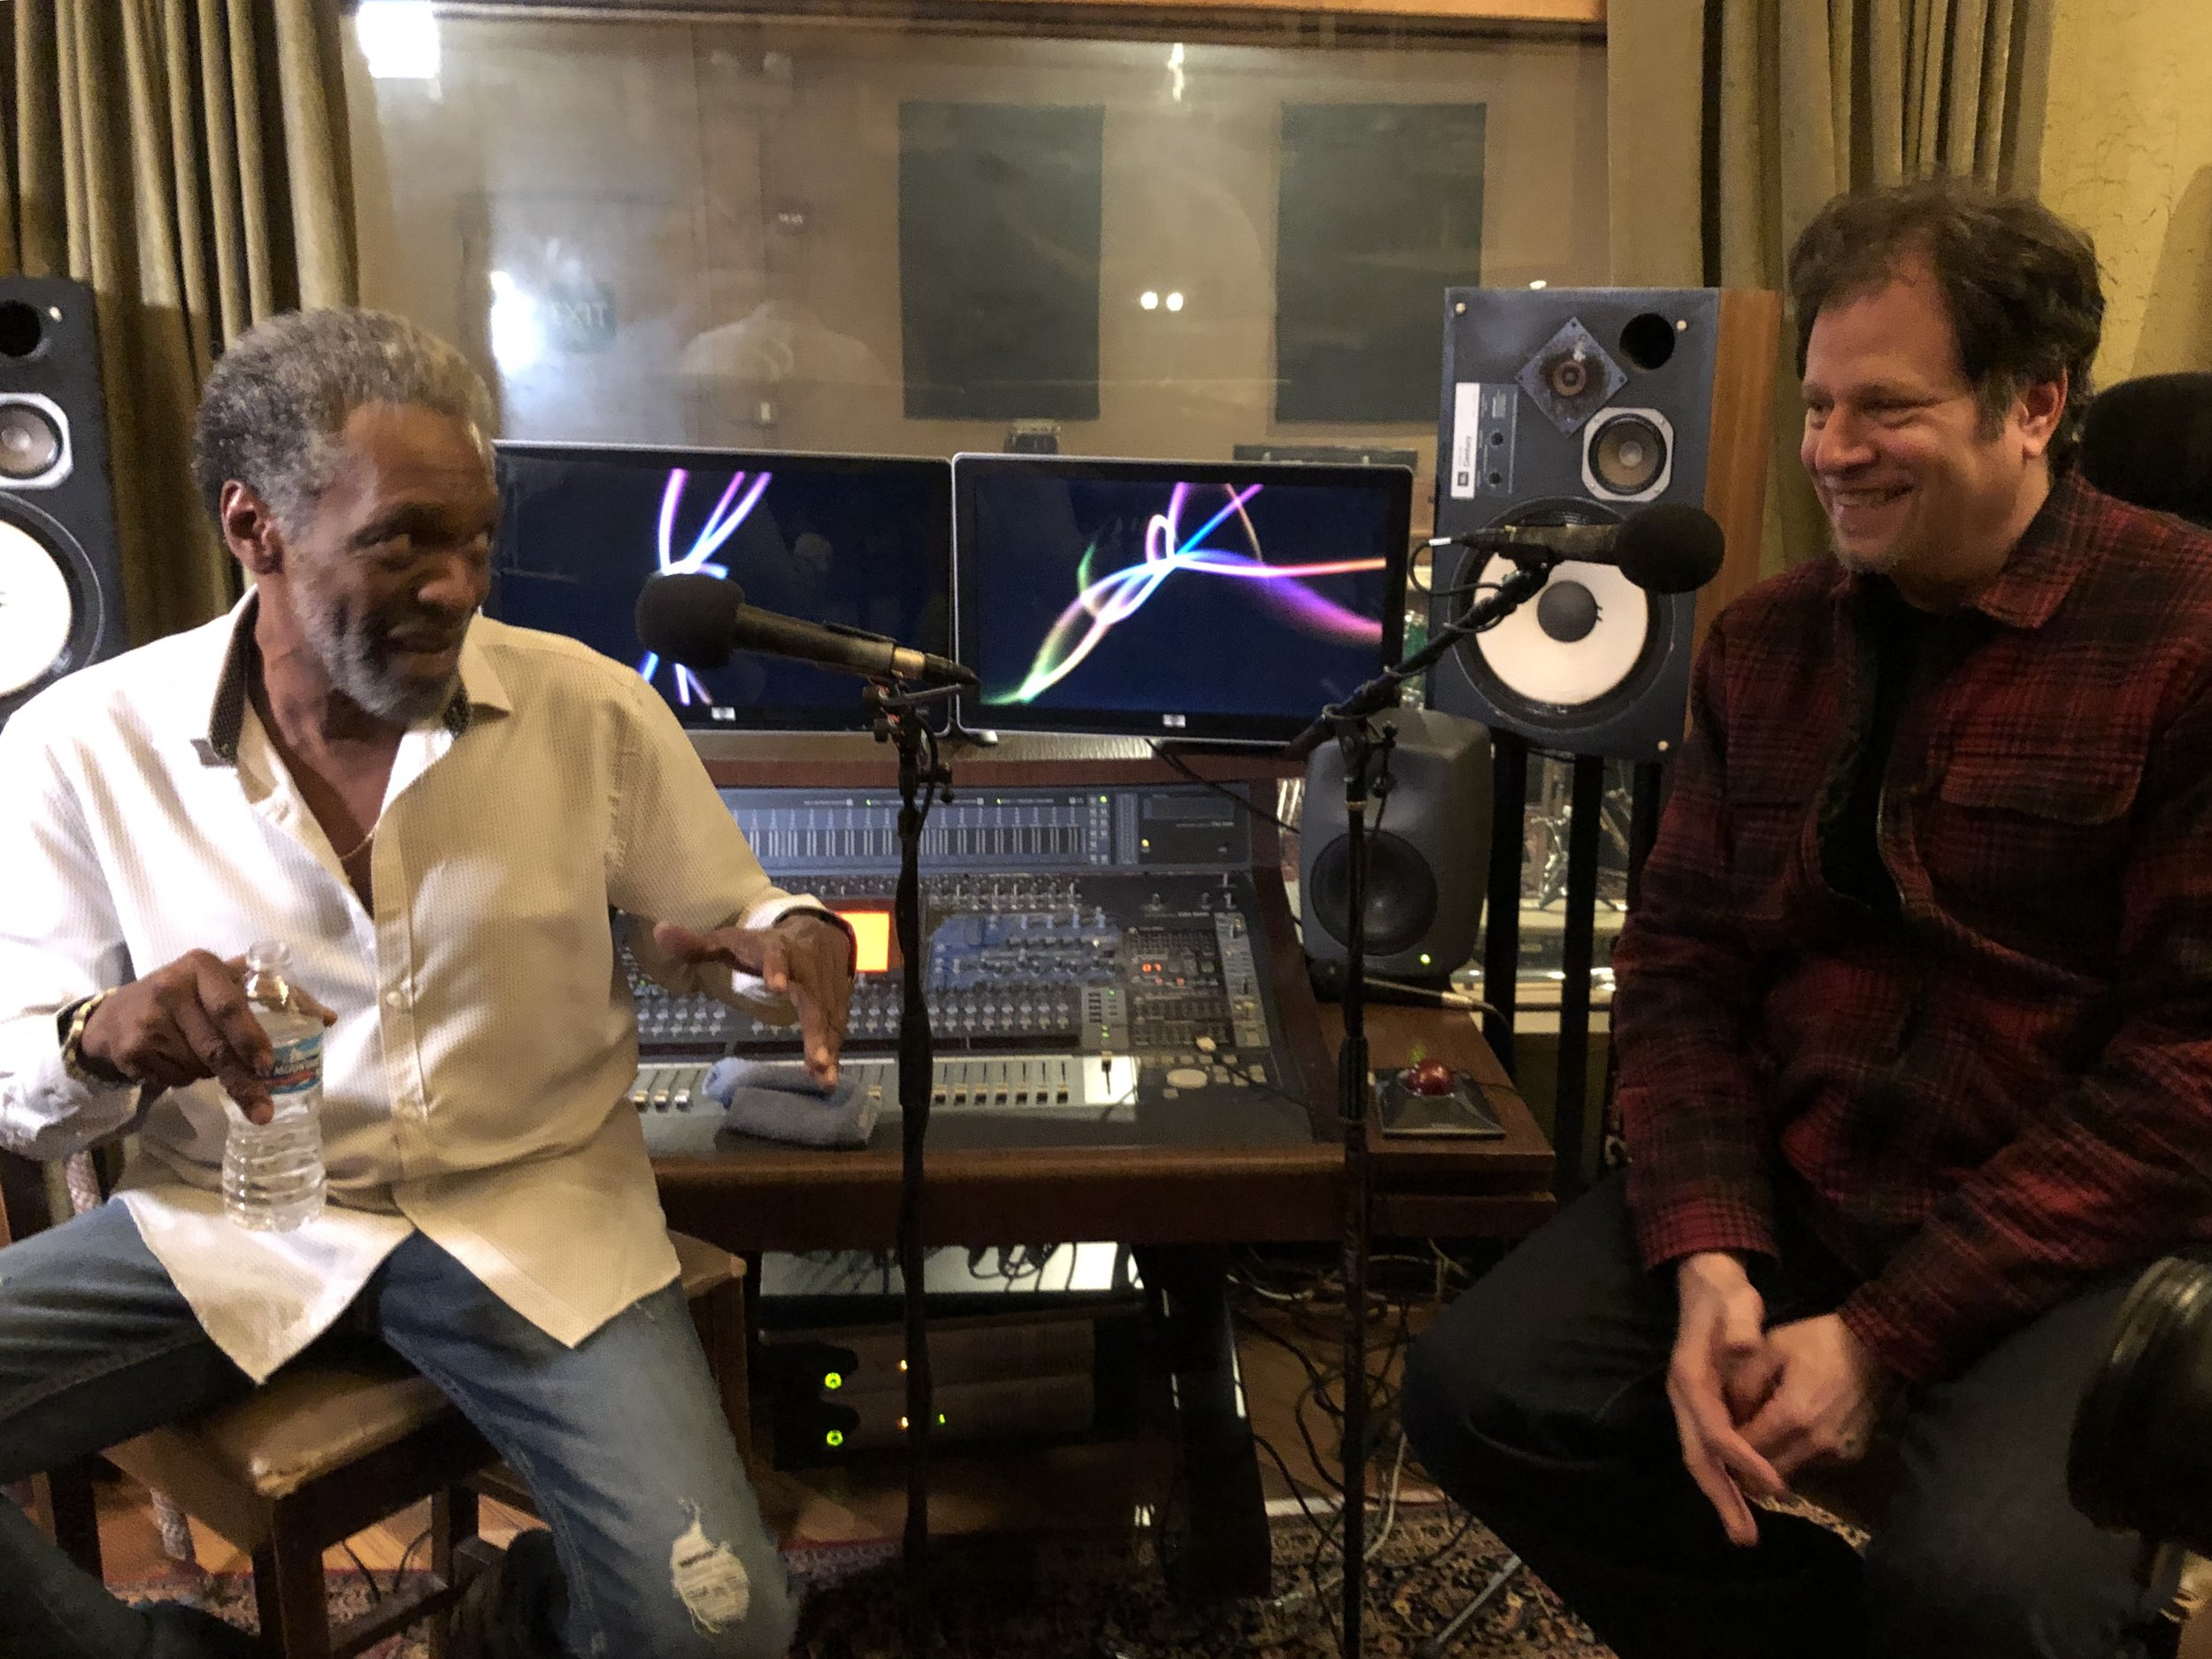 Donald Kinsey - A session with Donald Kinsey